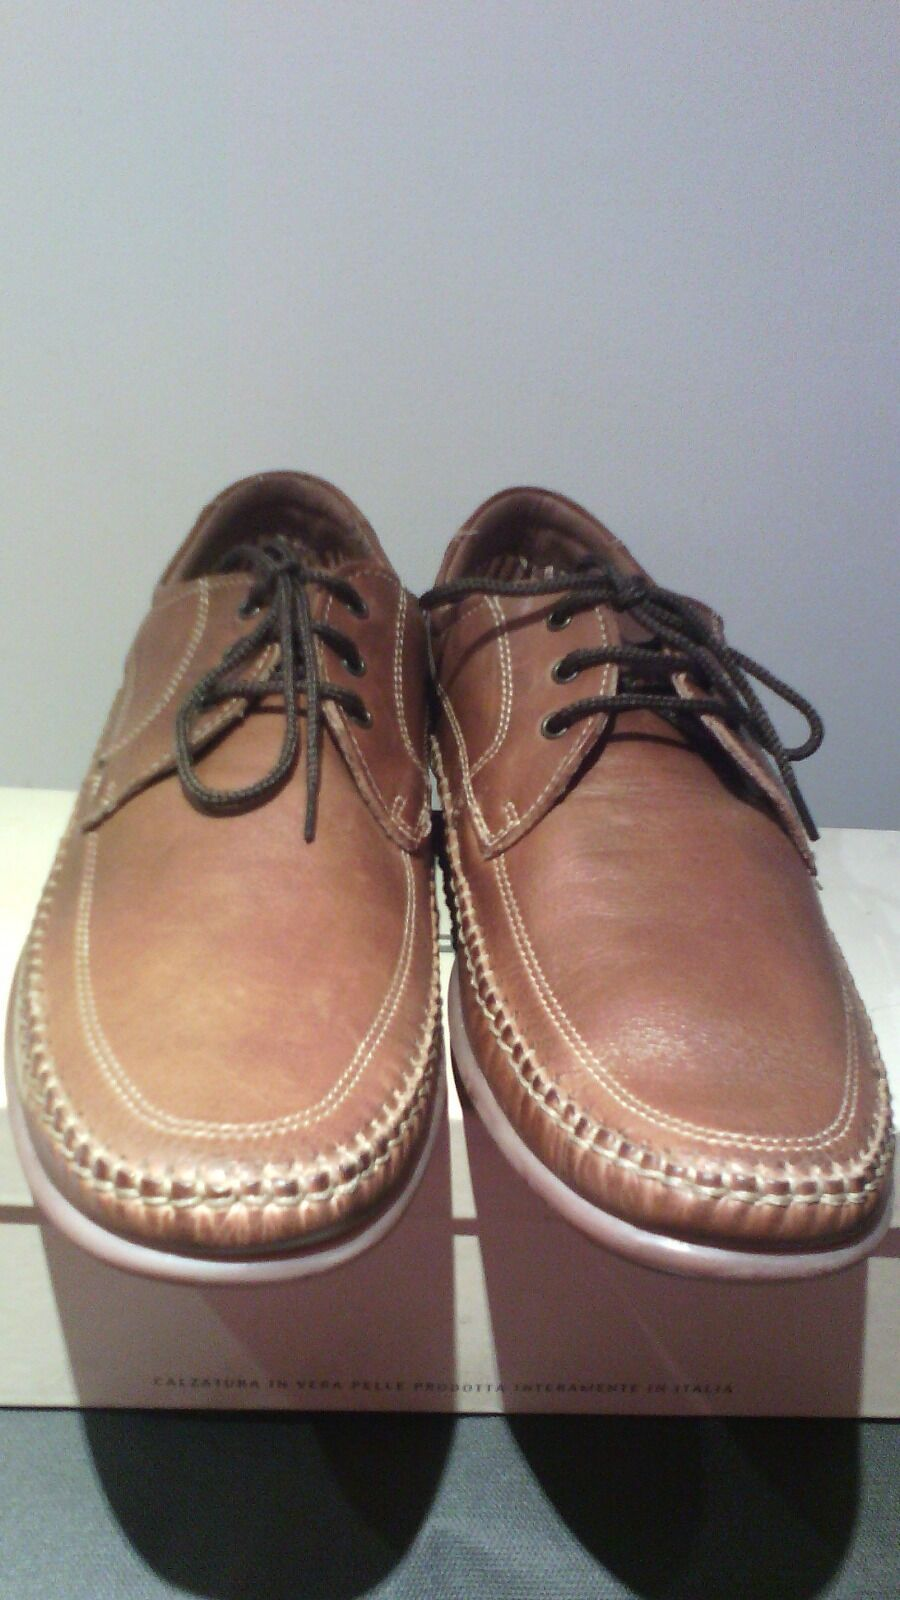 shoes brown genuine leather size 43 eu size 8 5